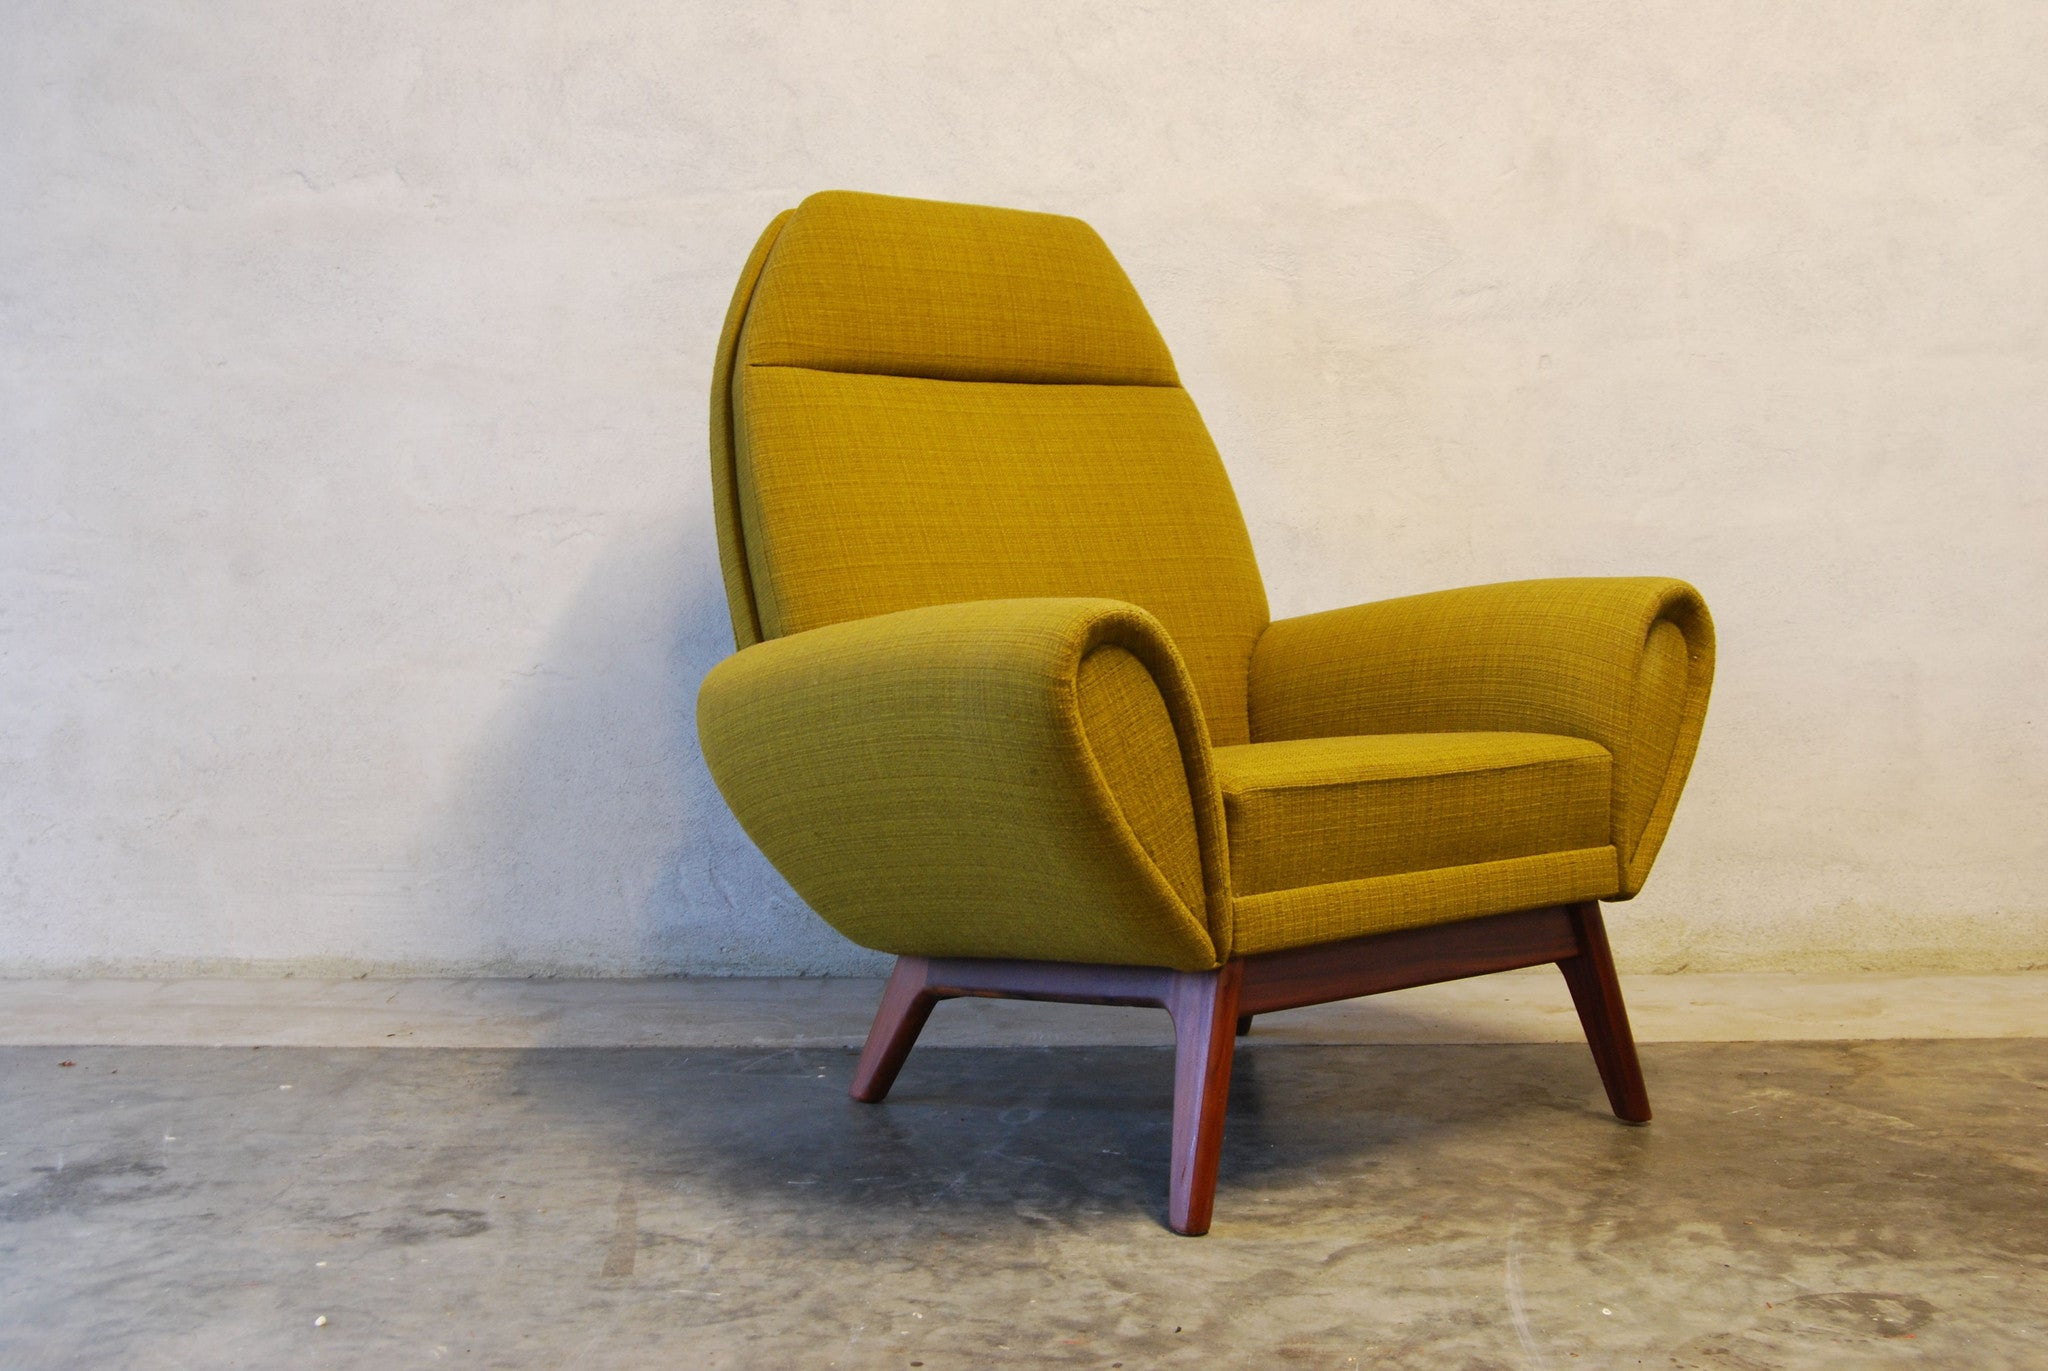 Chase & Sorensen Lounge chair by Johannes Andersen